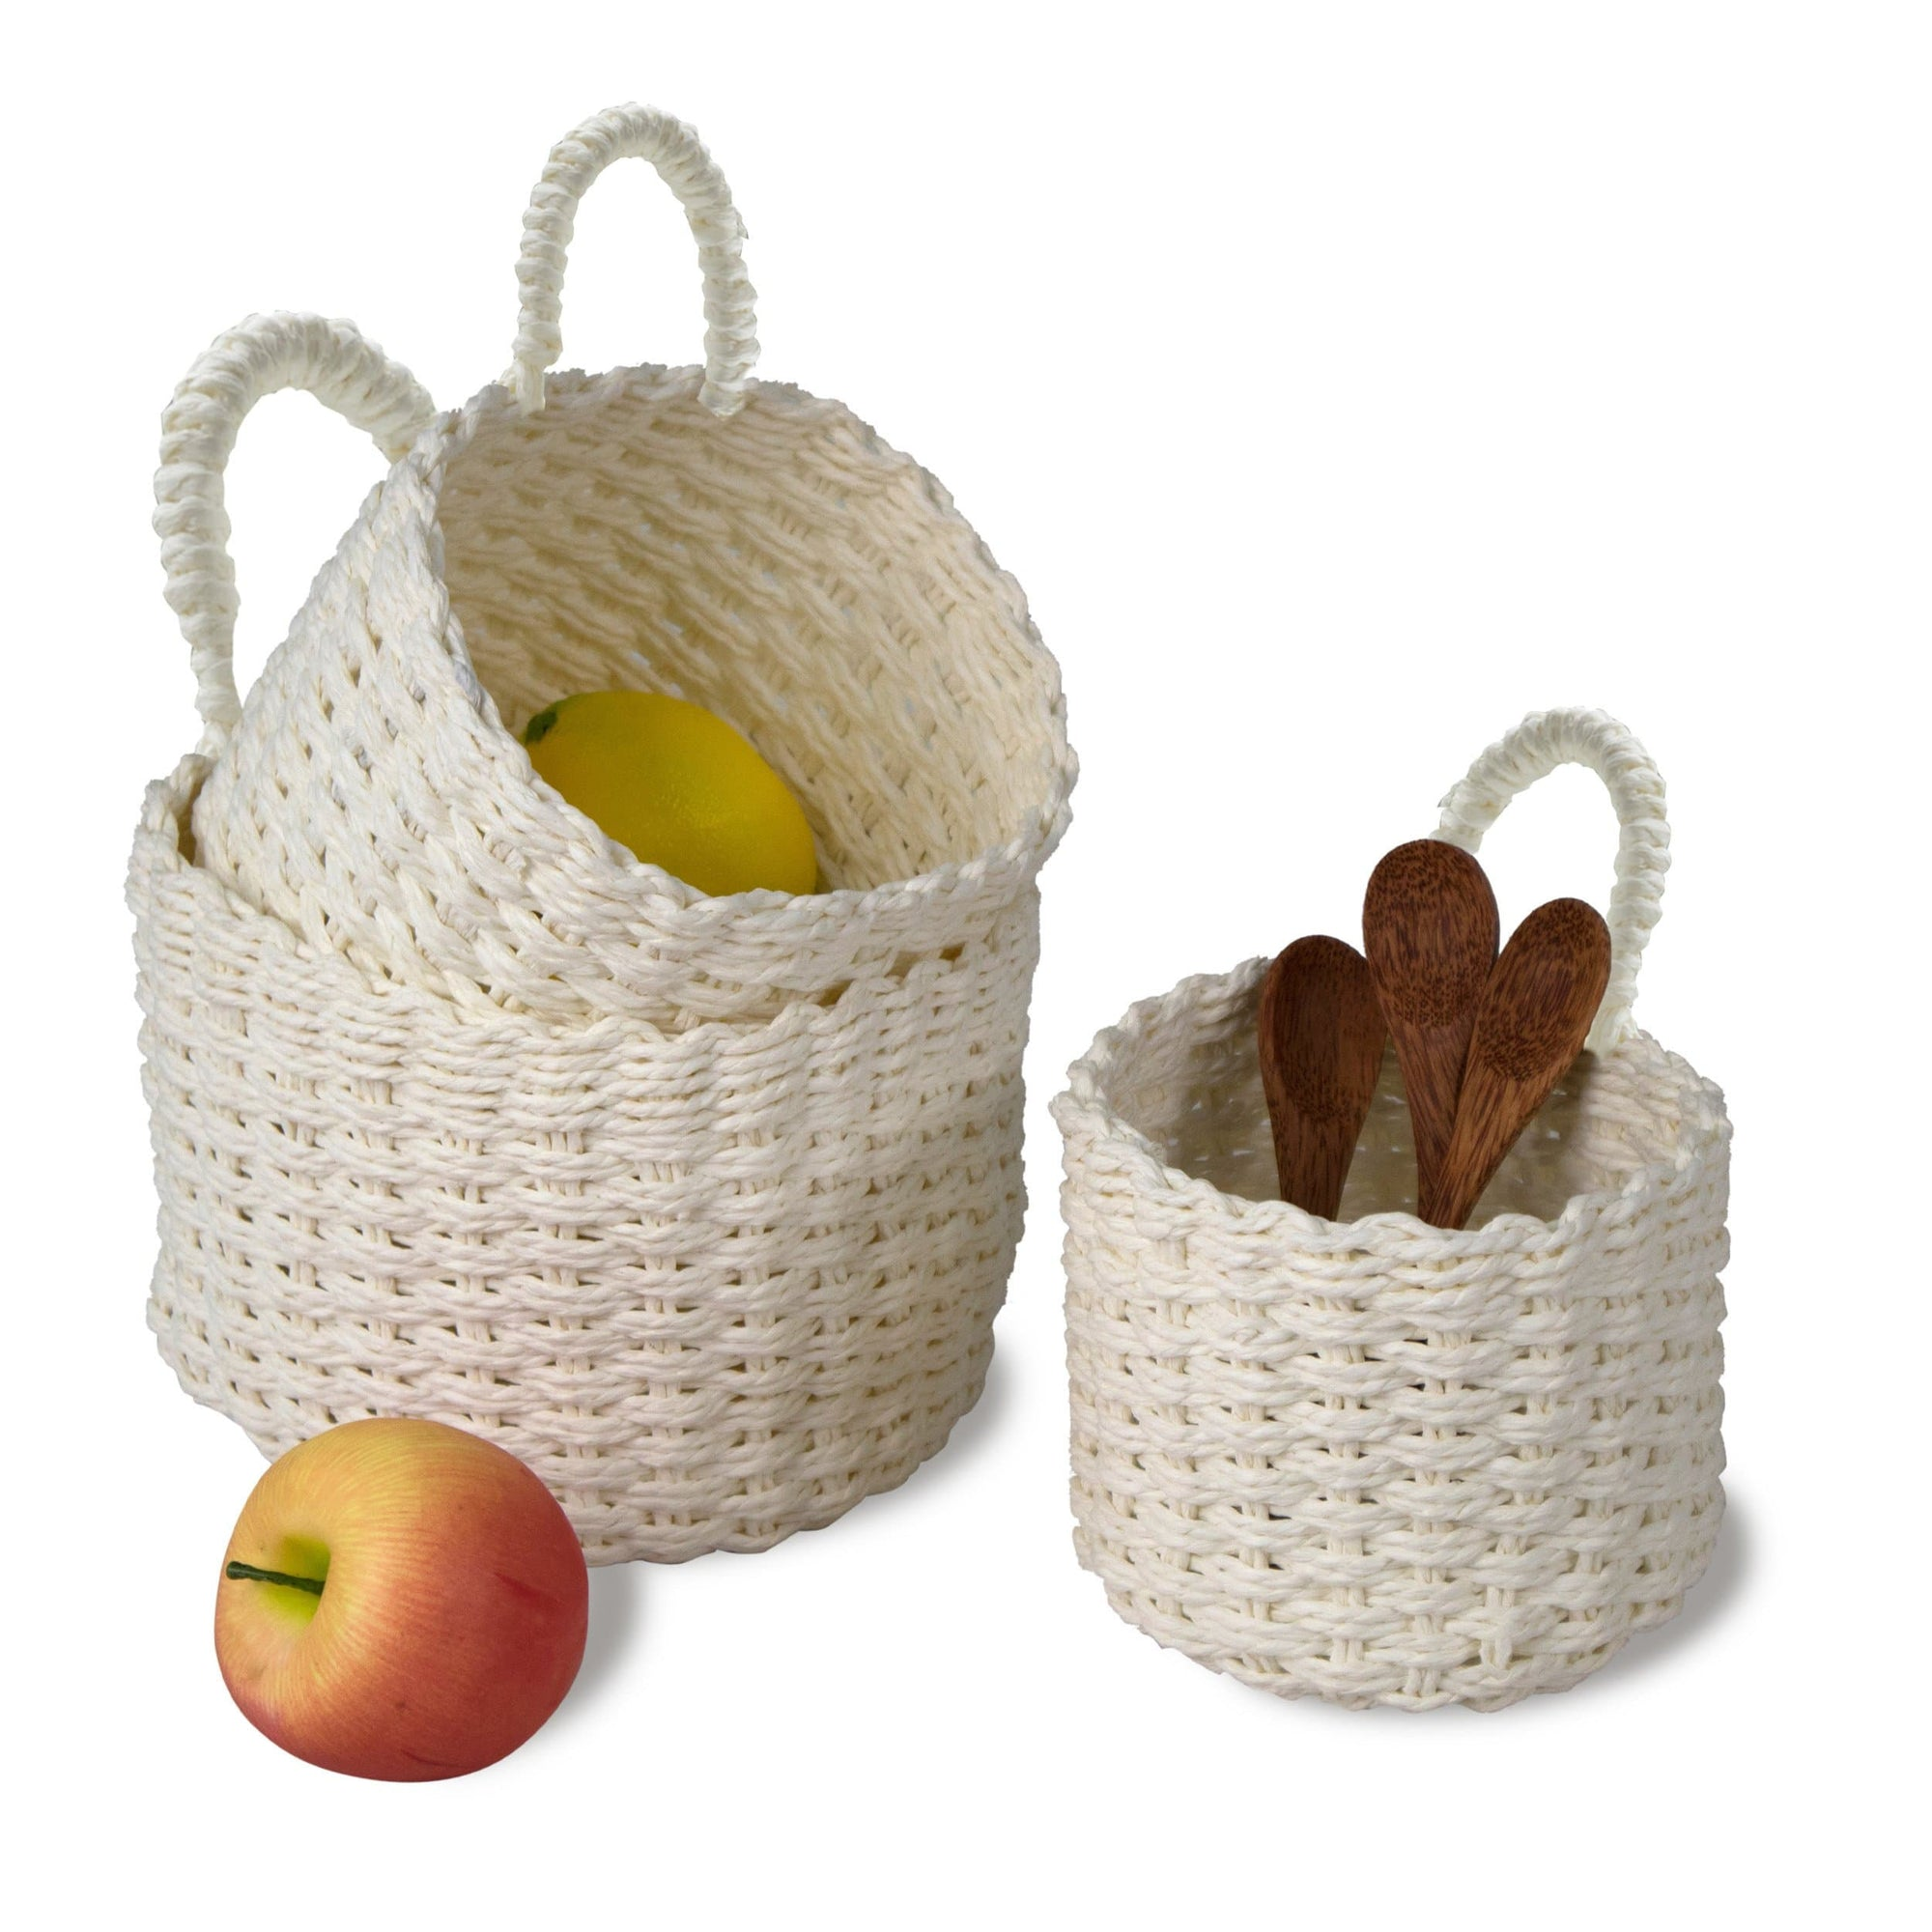 Made Terra Storage basket White Circle Woven Wall Hanging Baskets for Storage and Plant Pot Cover